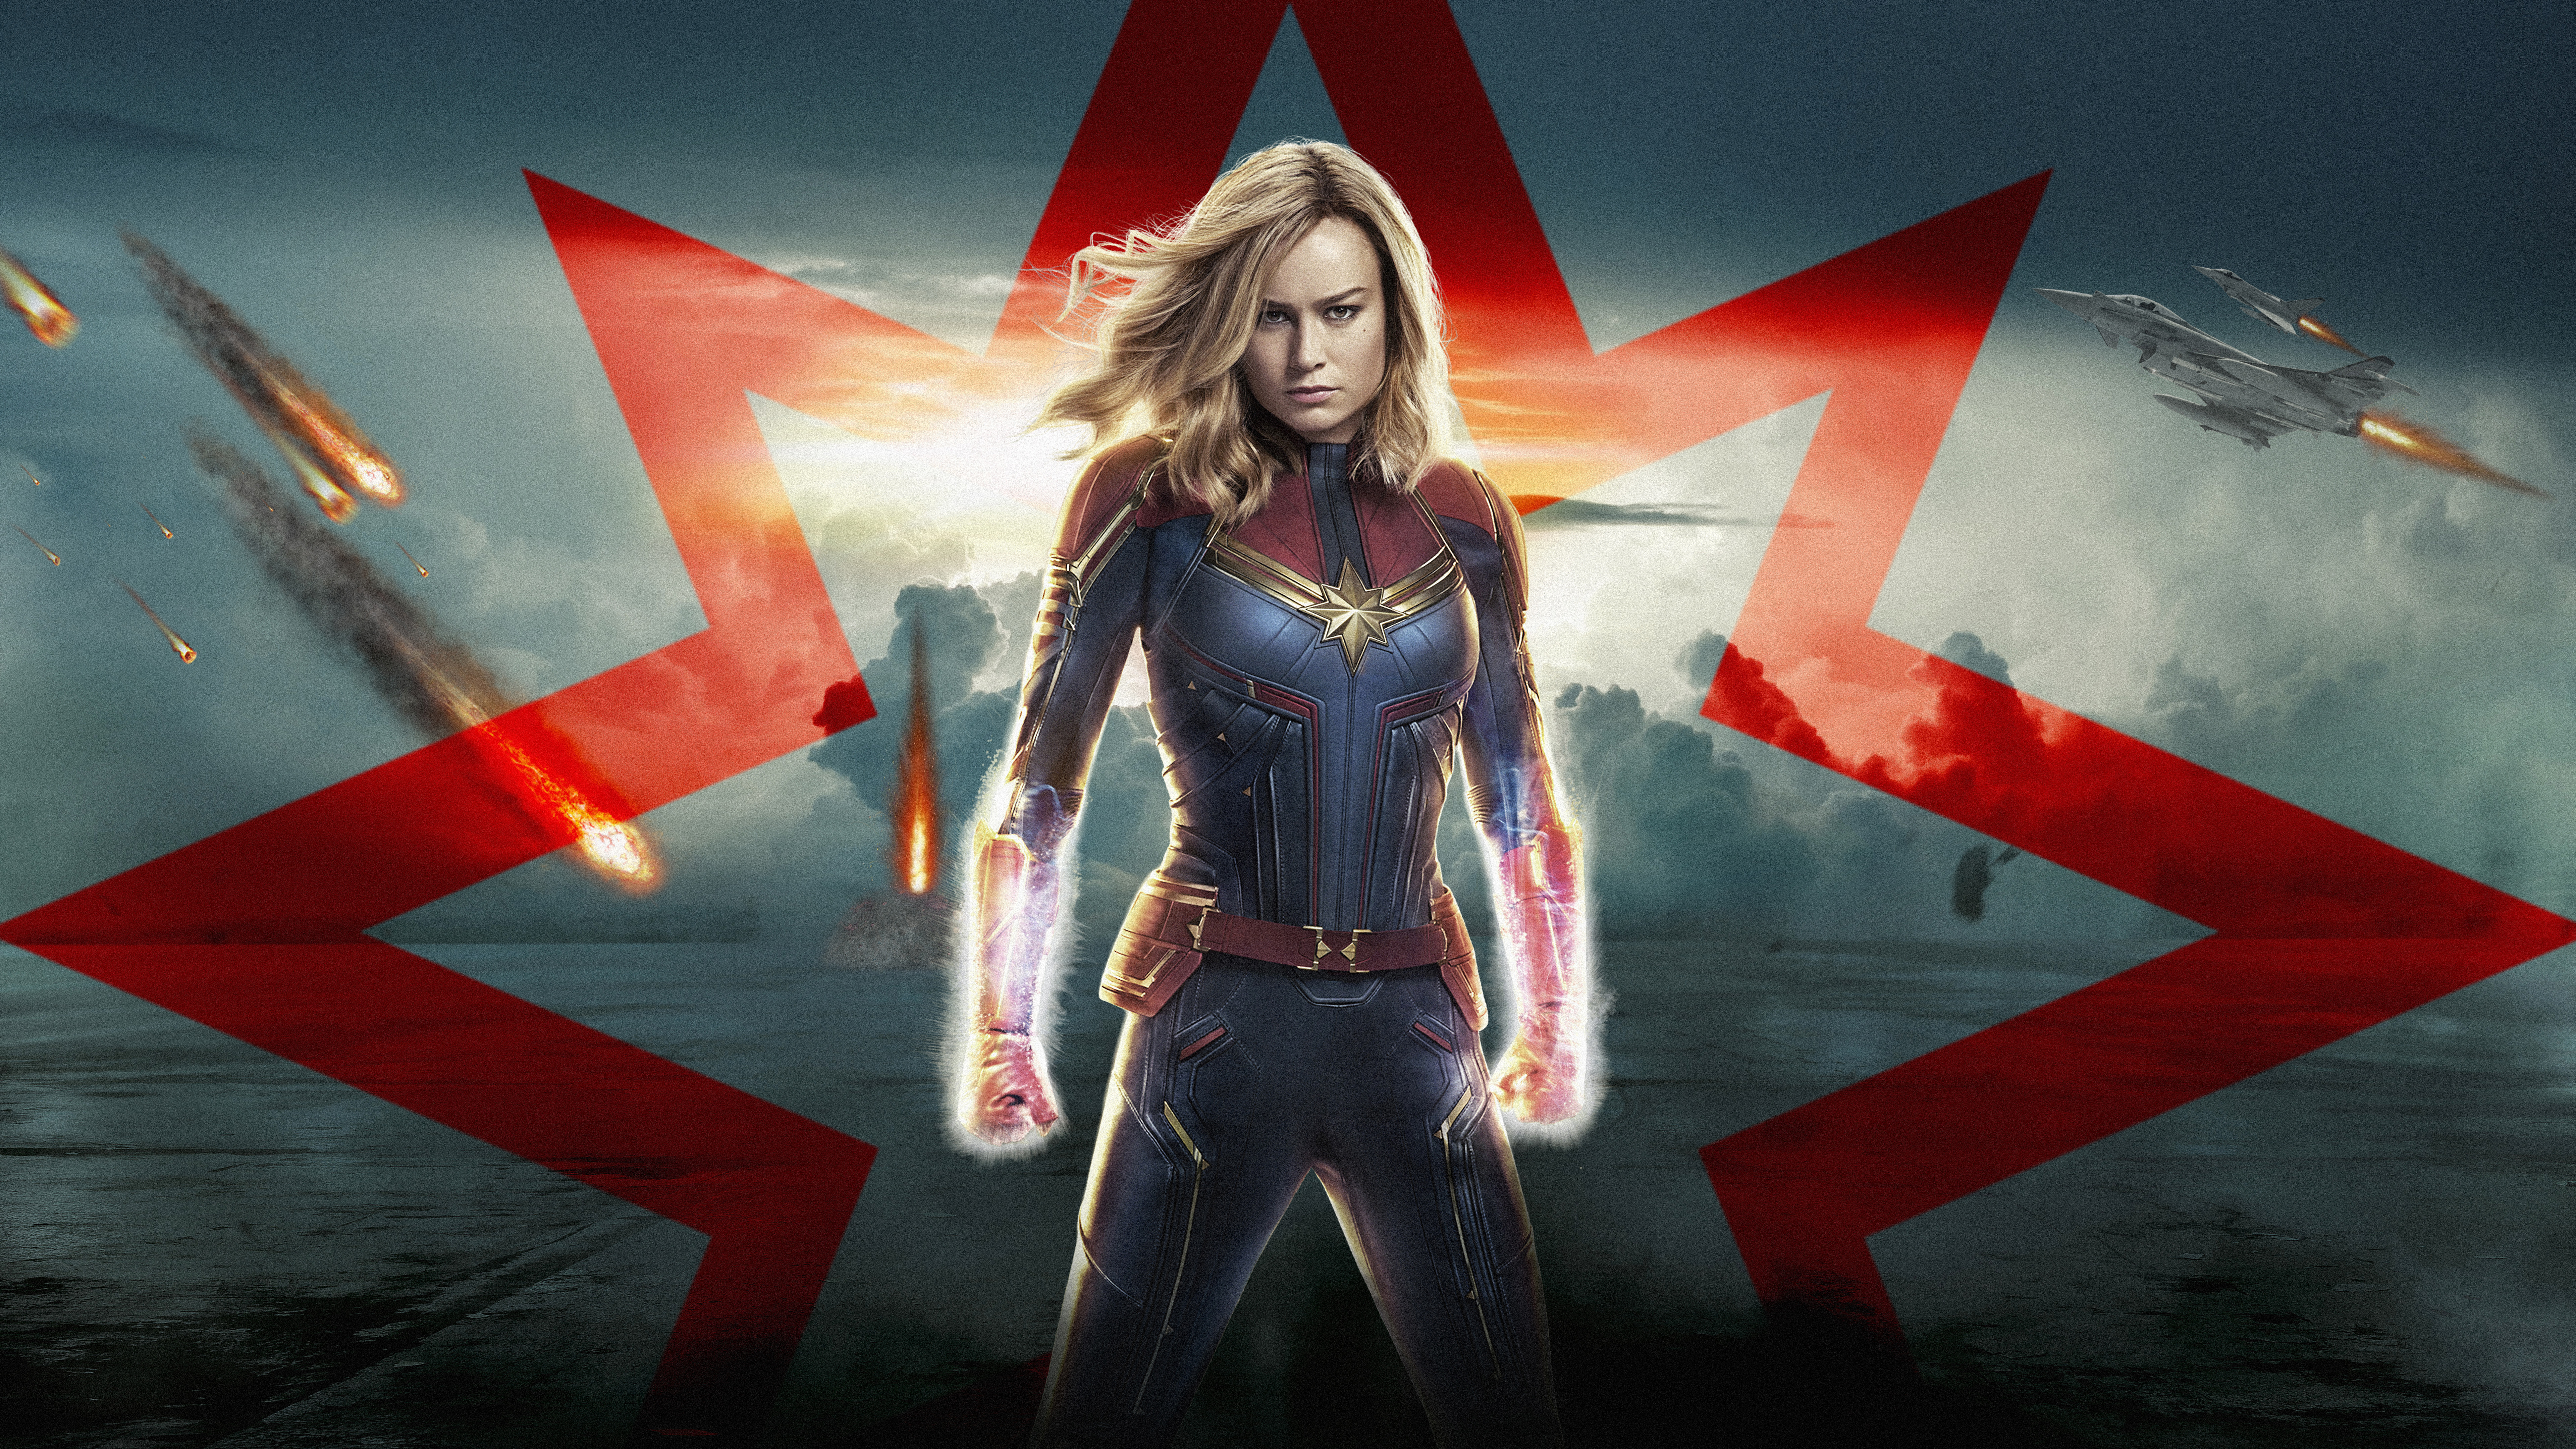 Brie Larson Captain Marvel wallpaper and background 7680x4320